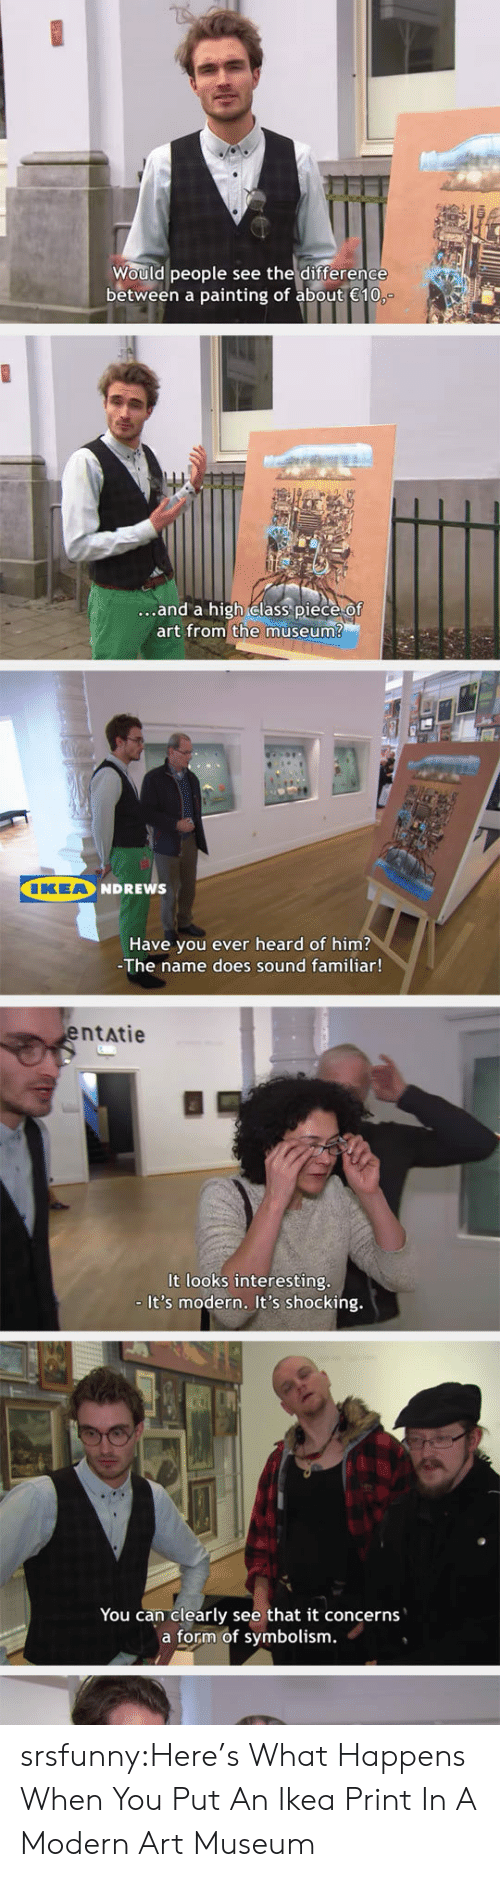 modern art: Would people see the difference  between a painting of about 10  ...and a high elass piece Of  art from the museum?  IKEA  NDREWS  Have you ever heard of him?  The name does sound familiar!  entatie  It looks interesting  - It's modern. It's shocking.  You can clearly see that it concerns  a form of symbolism. srsfunny:Here's What Happens When You Put An Ikea Print In A Modern Art Museum